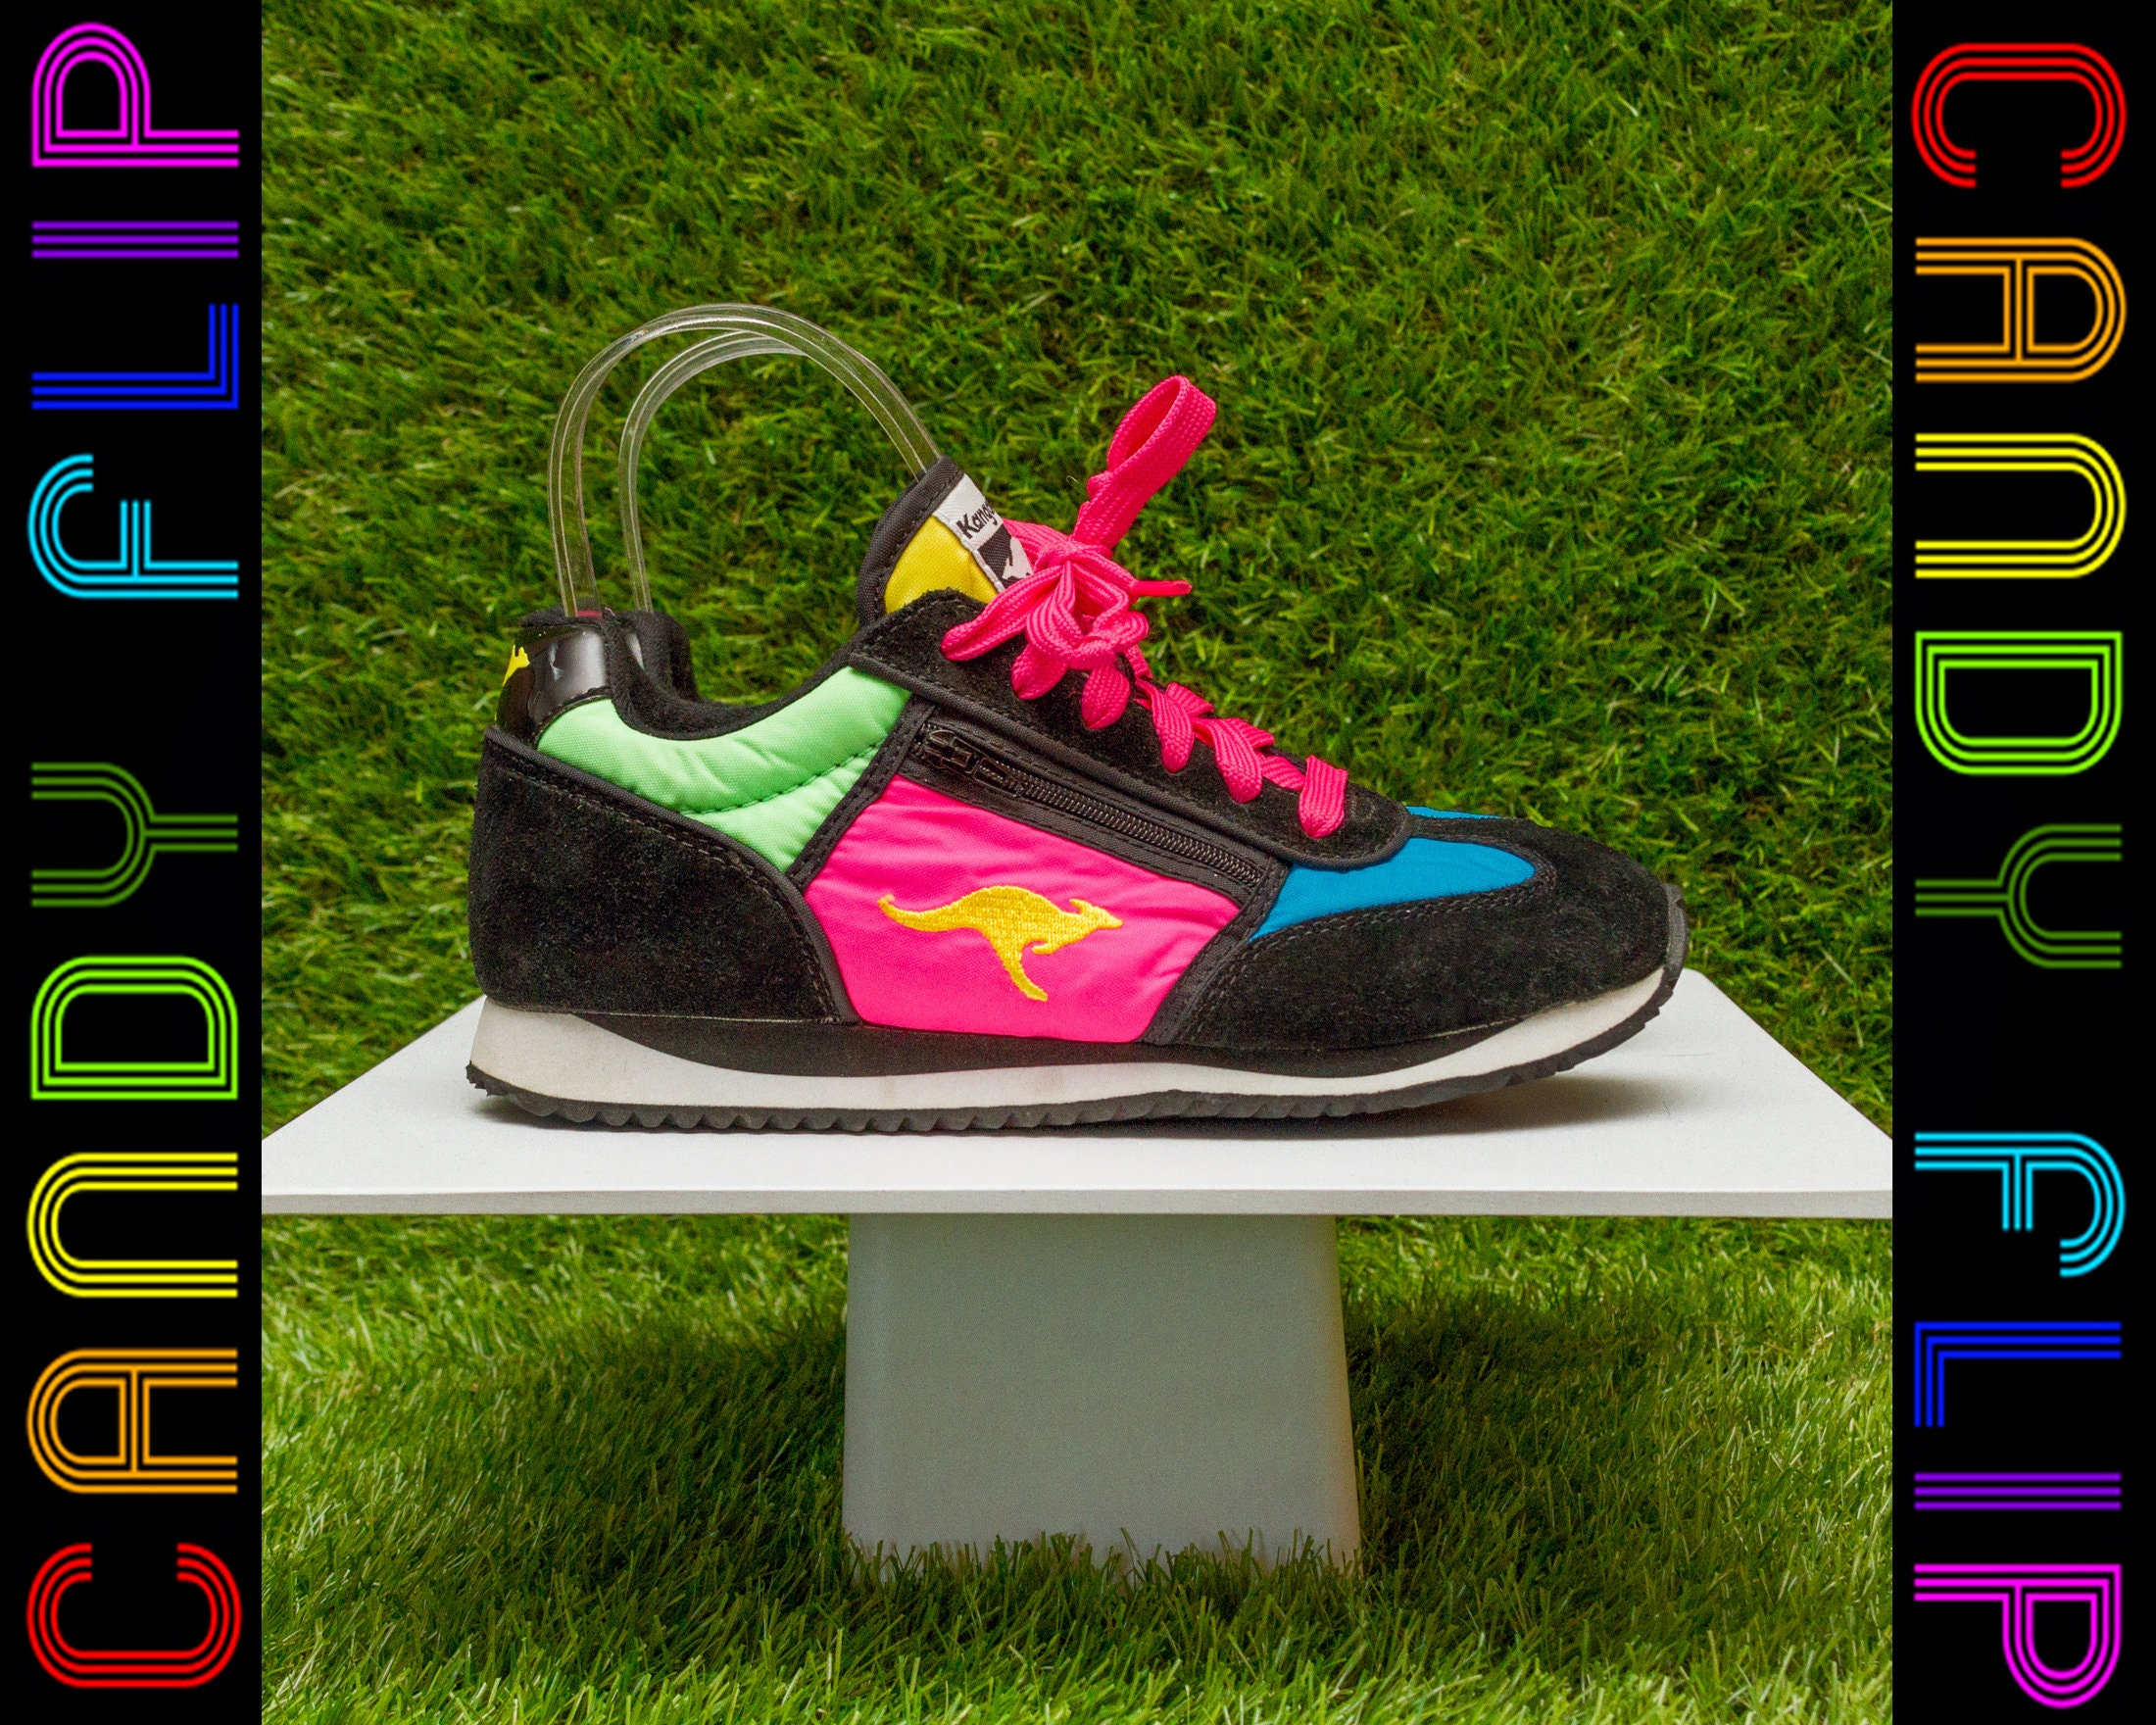 663d29fb80fe Vintage 90s KangaROOS Neon Rainbow Black Color Block Pink Blue Green Yellow  Running Zipper Pouch Suede Nylon Sneaker Shoe Women s US 4 UK 3